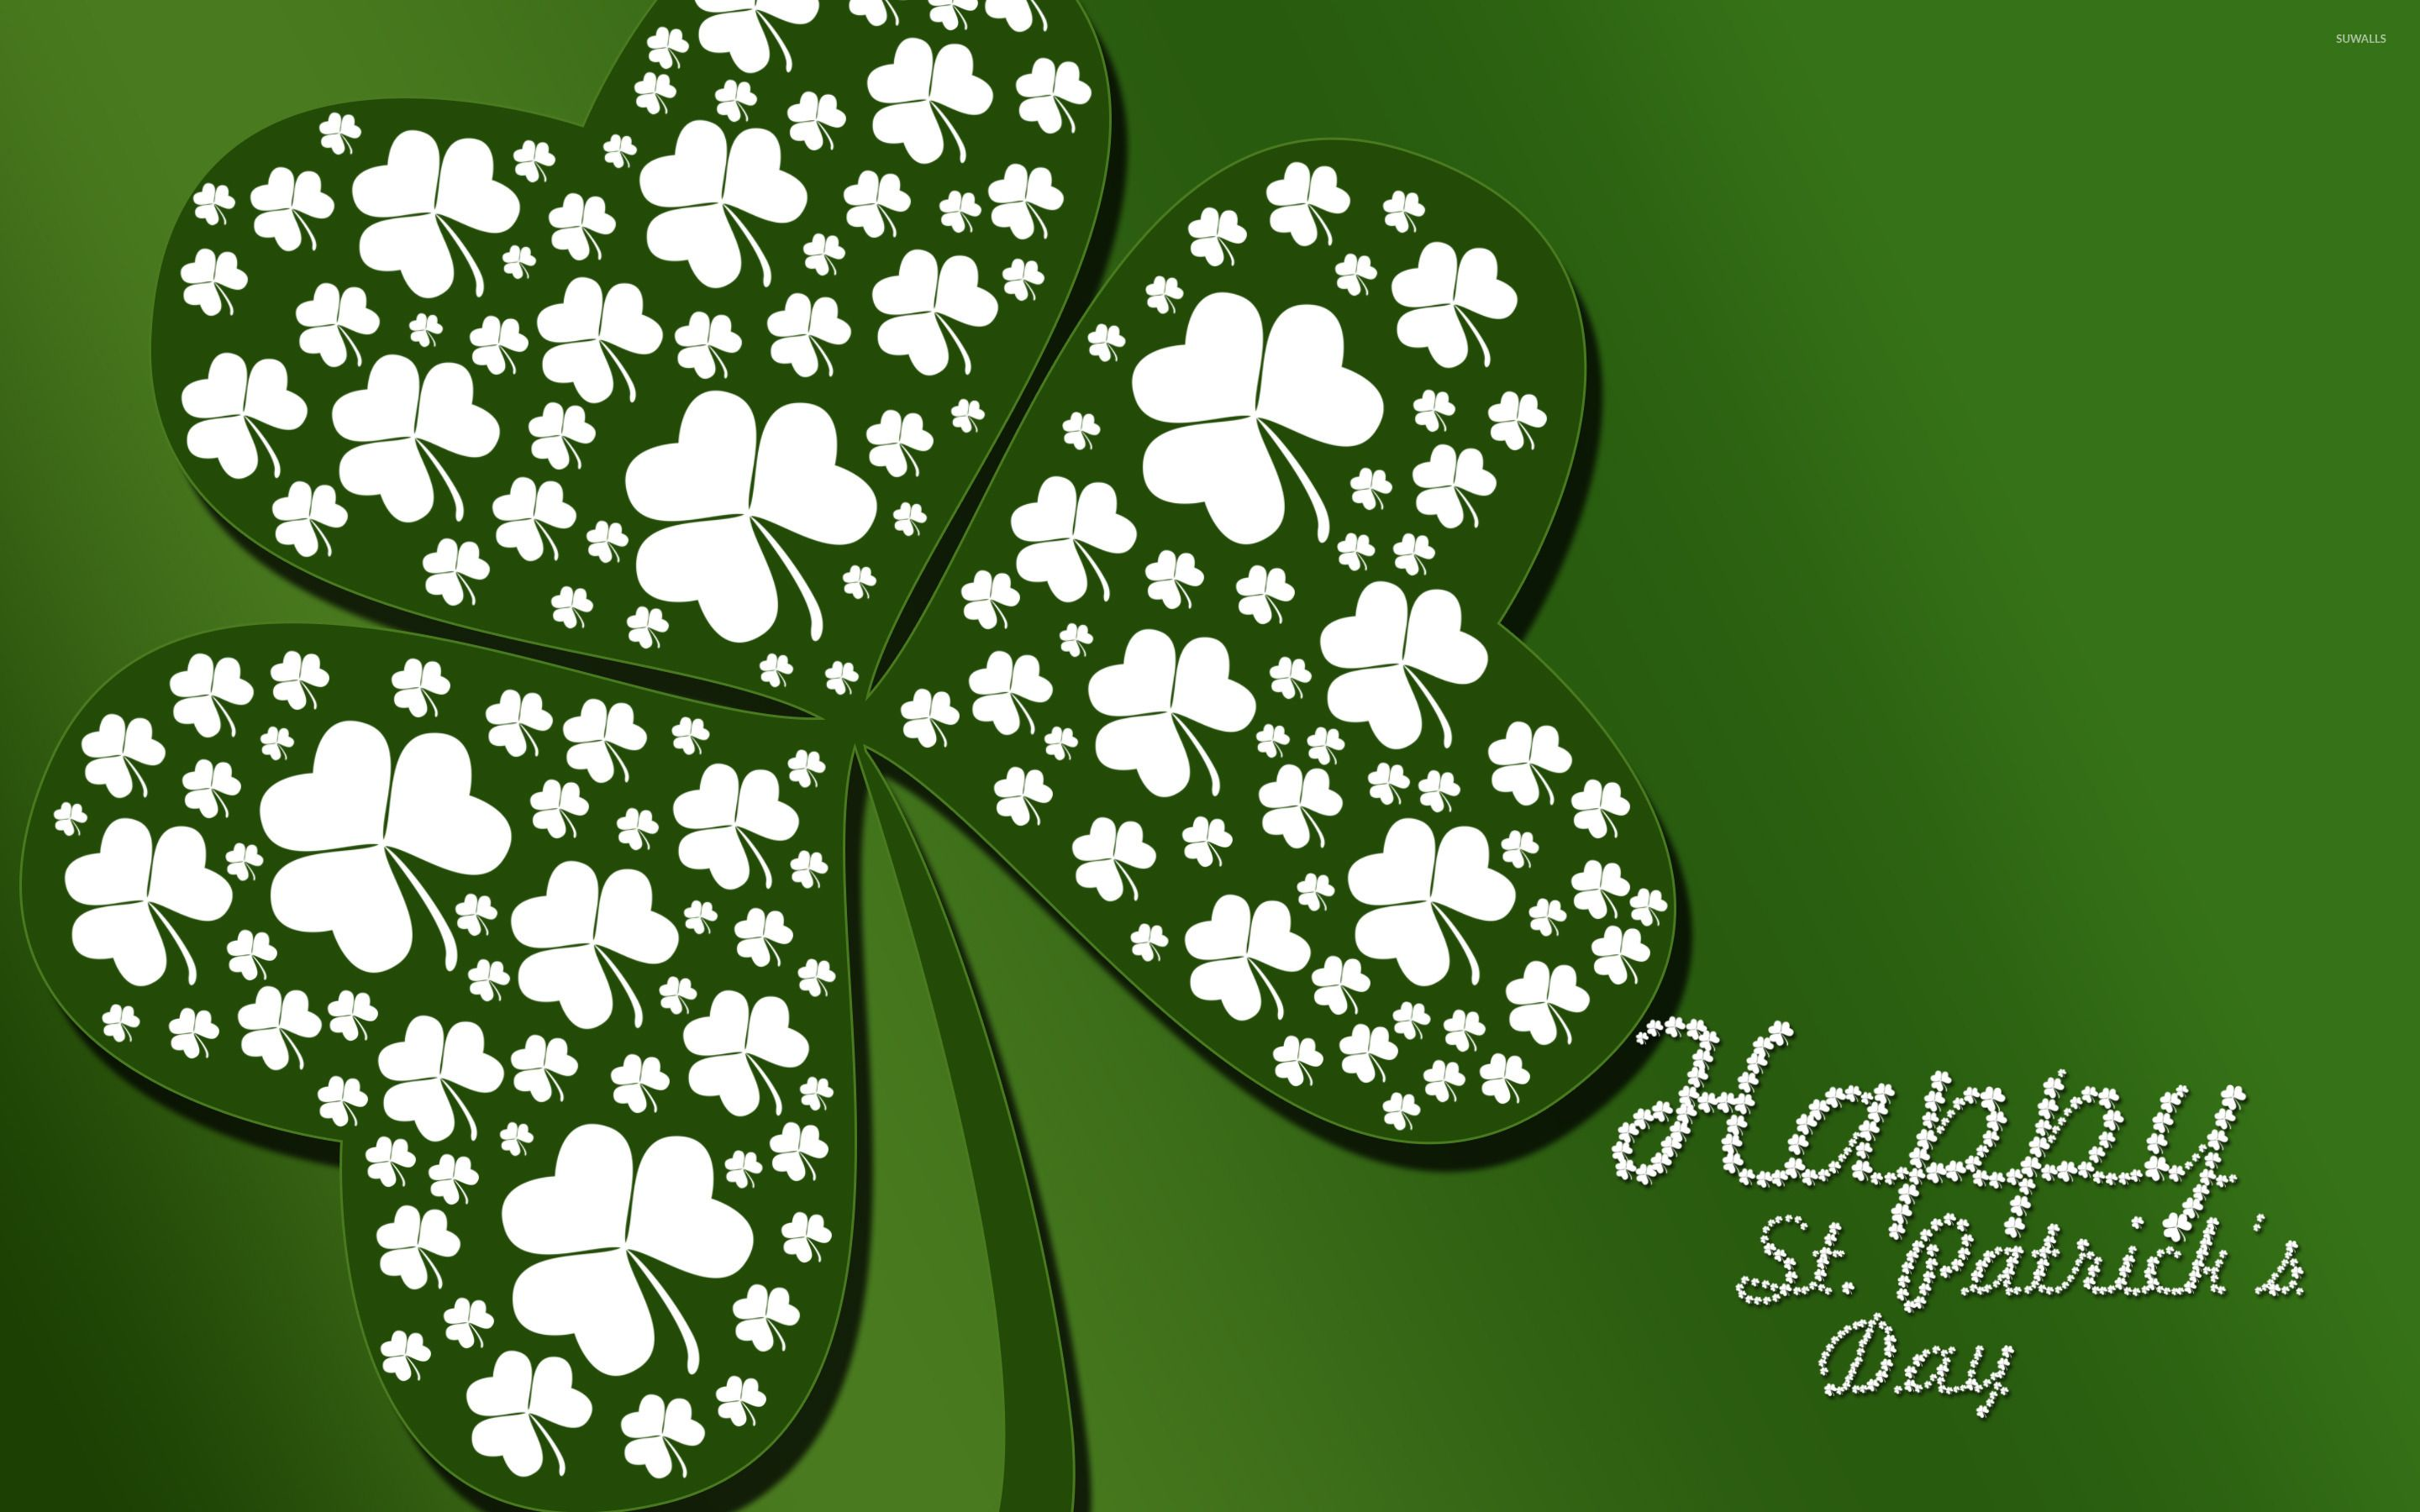 St Patricks Day HD Wallpapers St patricks day wallpaper Happy 2880x1800